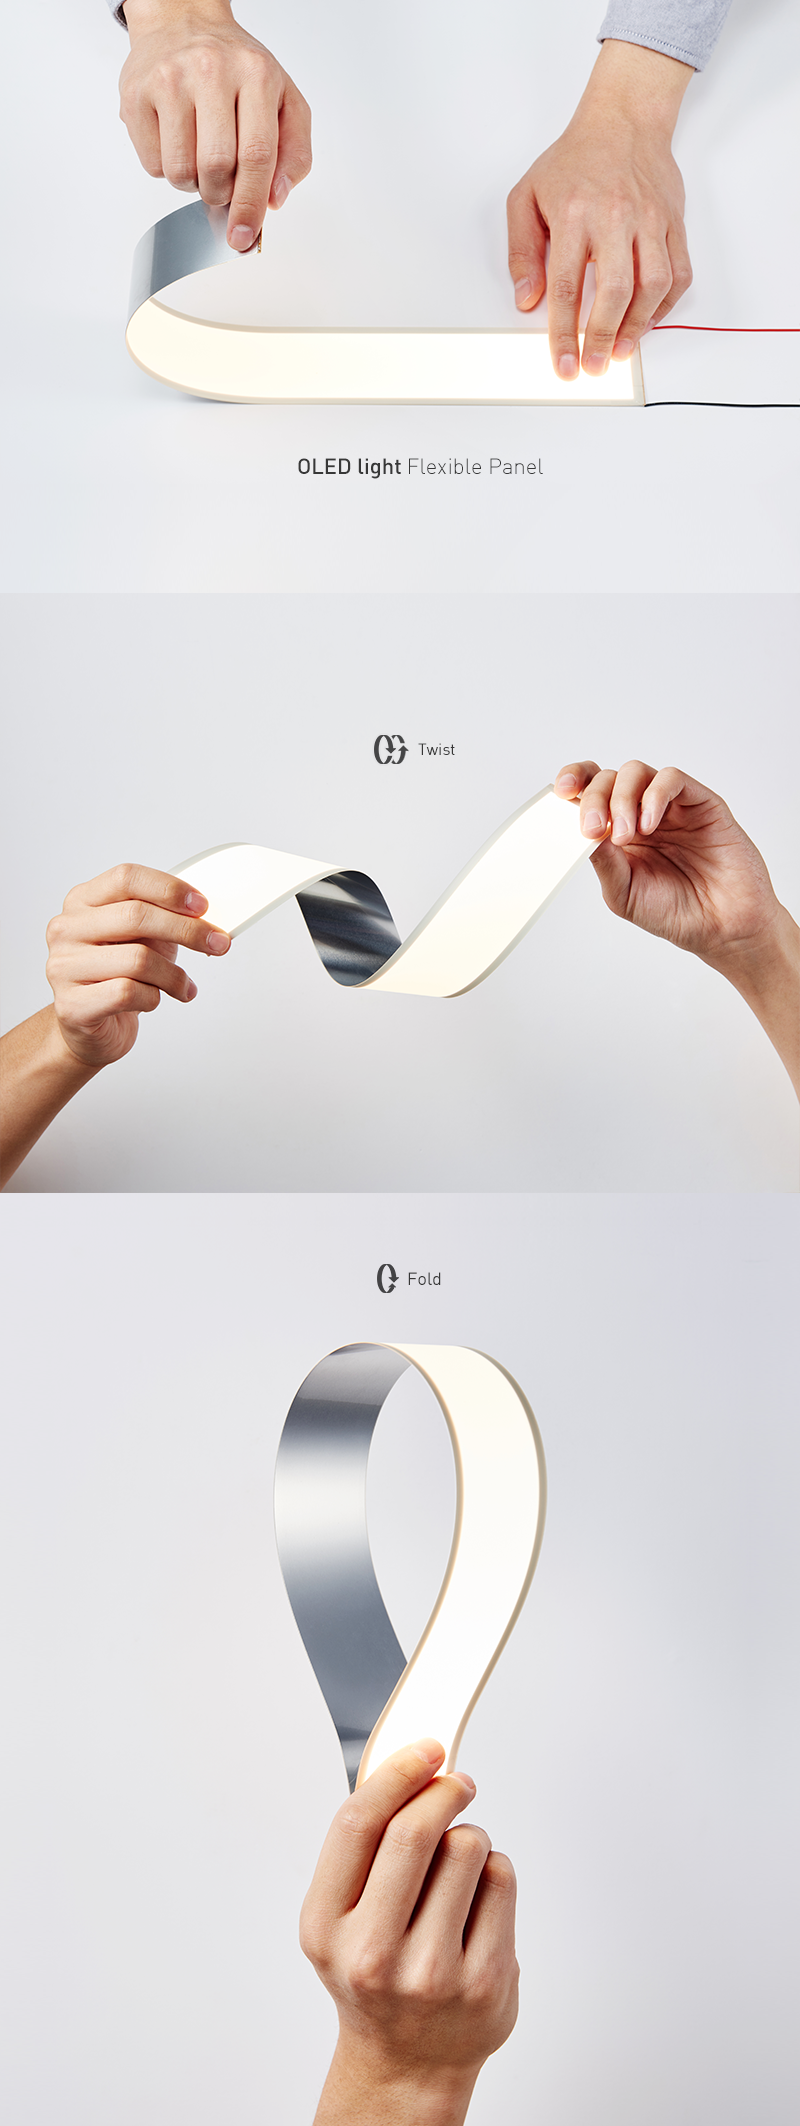 This Is The Newly Launched Flexible OLED Panel. The Long Rectangular Shape  Makes It Possible To Be Utilized In Even More Diverse Places.